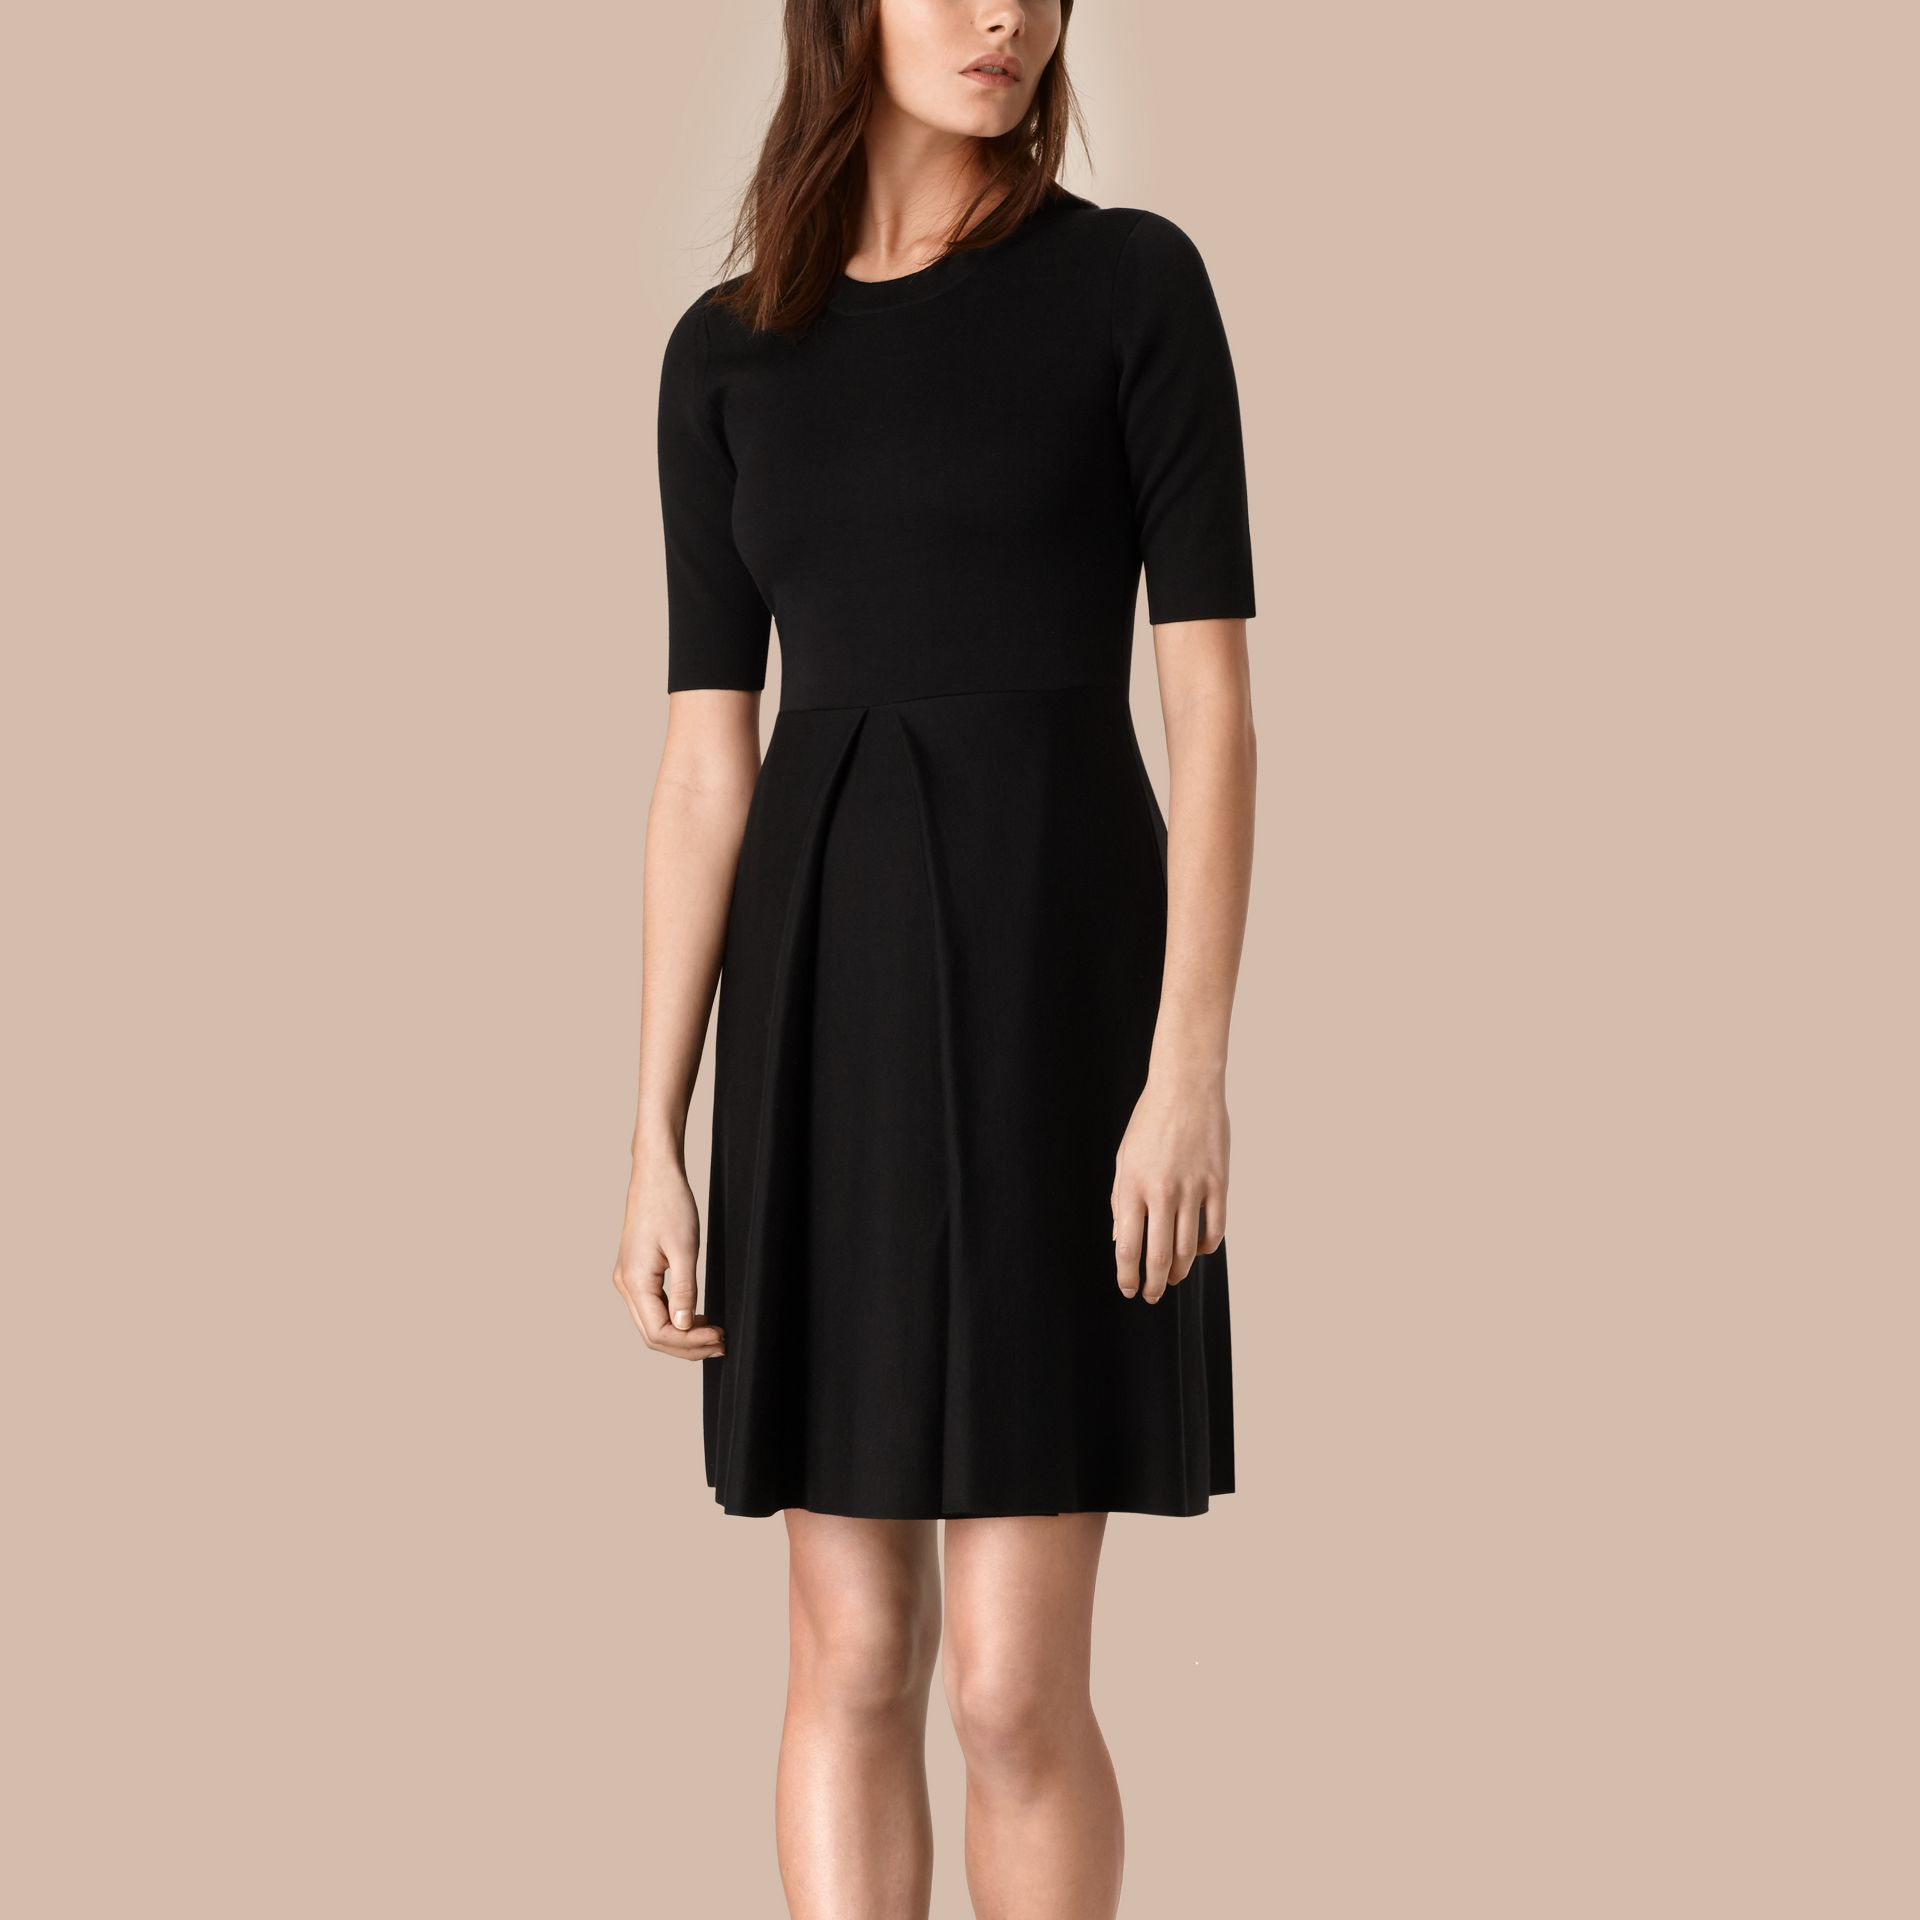 Black Knitted Silk Wool Dress Black - gallery image 1